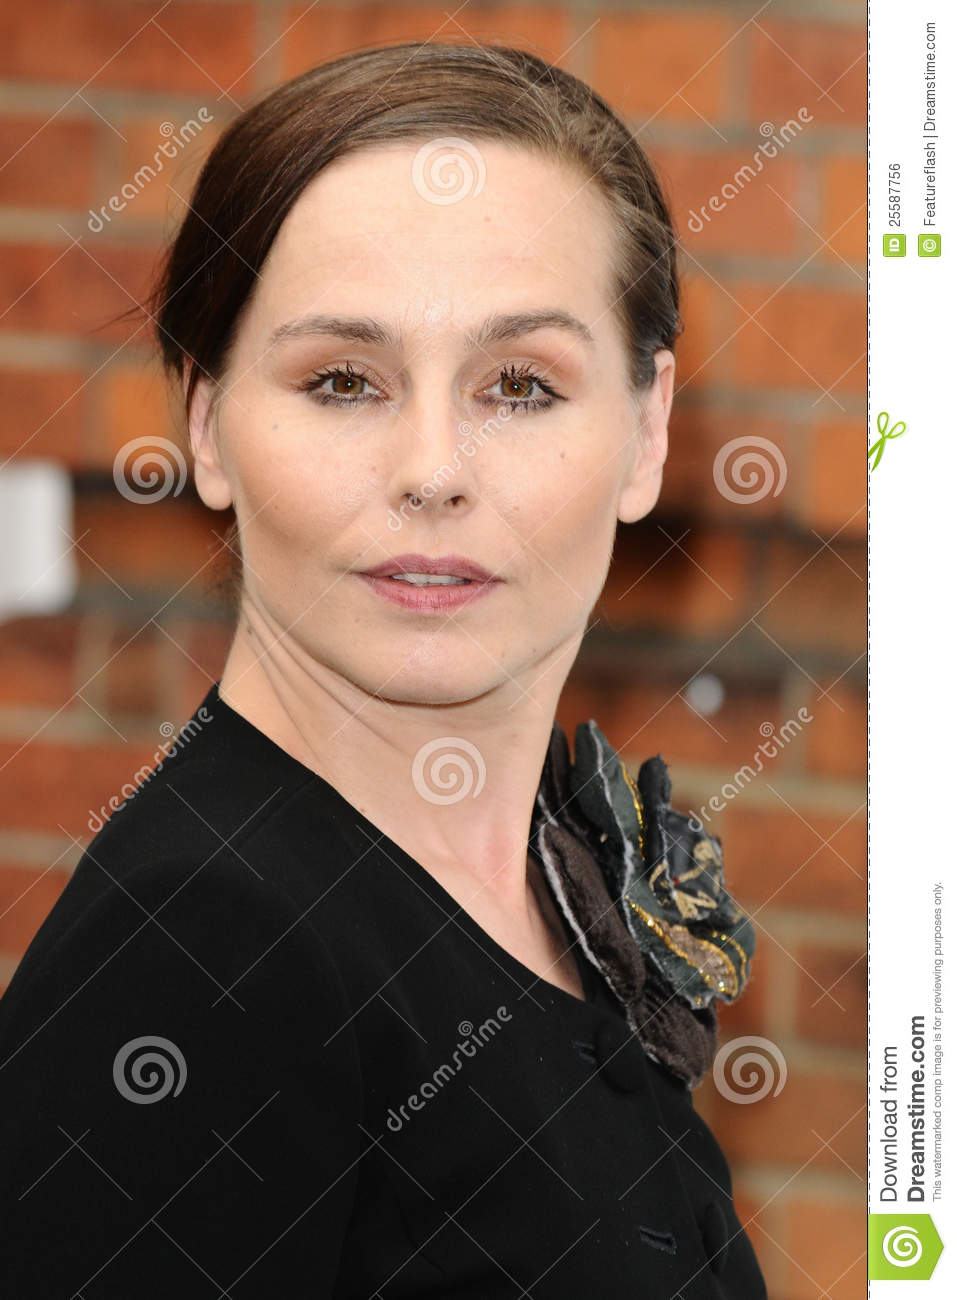 tara fitzgerald husbandtara fitzgerald husband, tara fitzgerald photos, tara fitzgerald game of thrones, tara fitzgerald wiki, tara fitzgerald imdb, tara fitzgerald twitter, tara fitzgerald - camomile lawn, tara fitzgerald writer, tara fitzgerald obituary, tara fitzgerald minnesota, tara fitzgerald woodbury, tara fitzgerald woodbury mn, tara fitzgerald hot